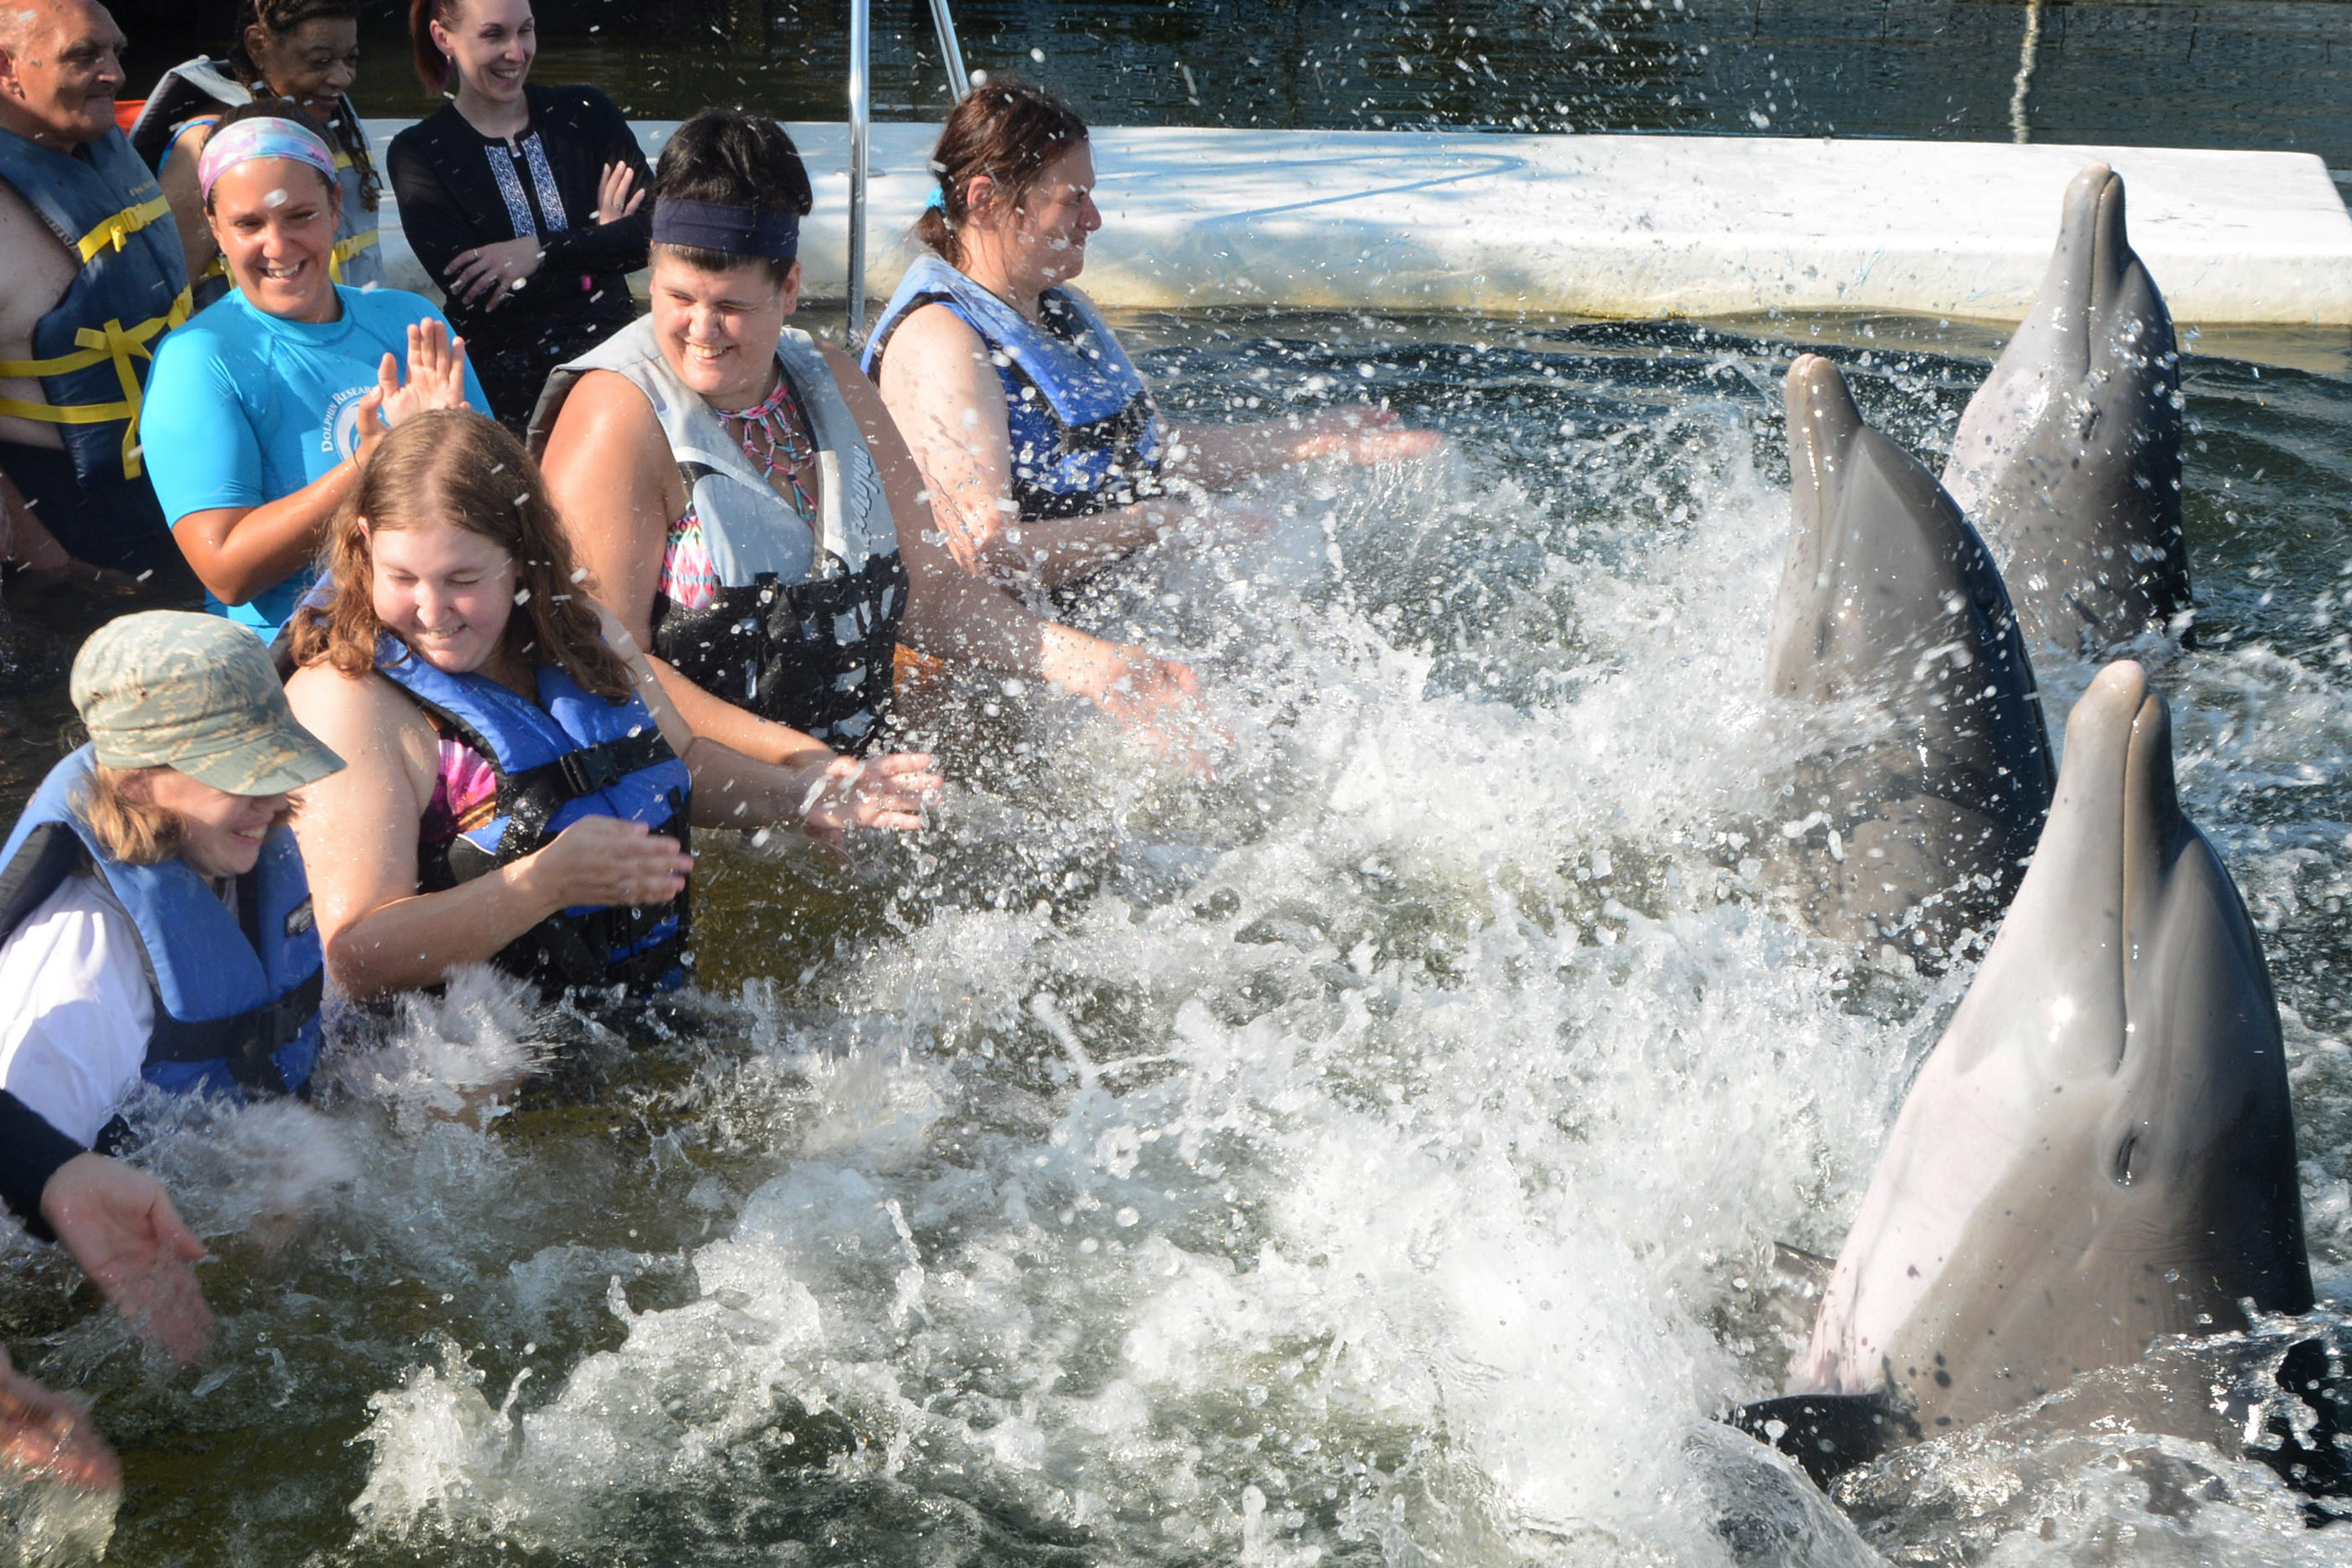 Vacationers and escorts enjoying being splashed by dolphins.